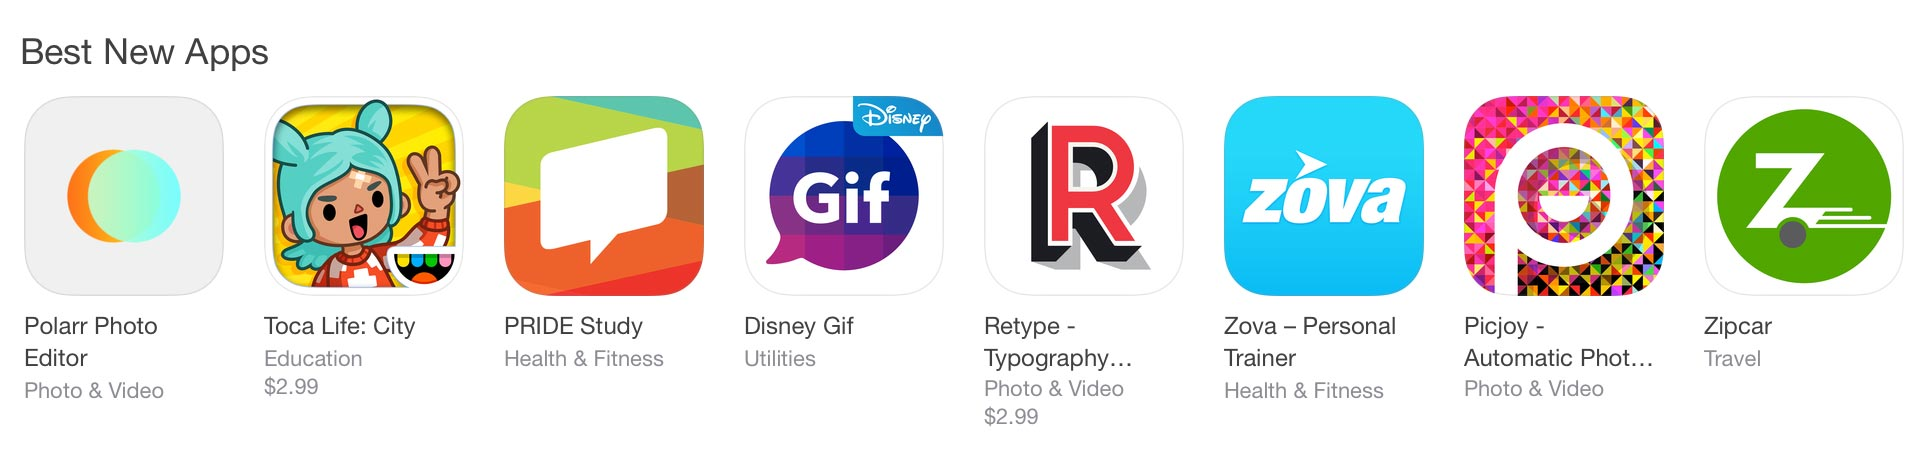 Polarr made it to the top ranking for best new app on Apple's App Store.